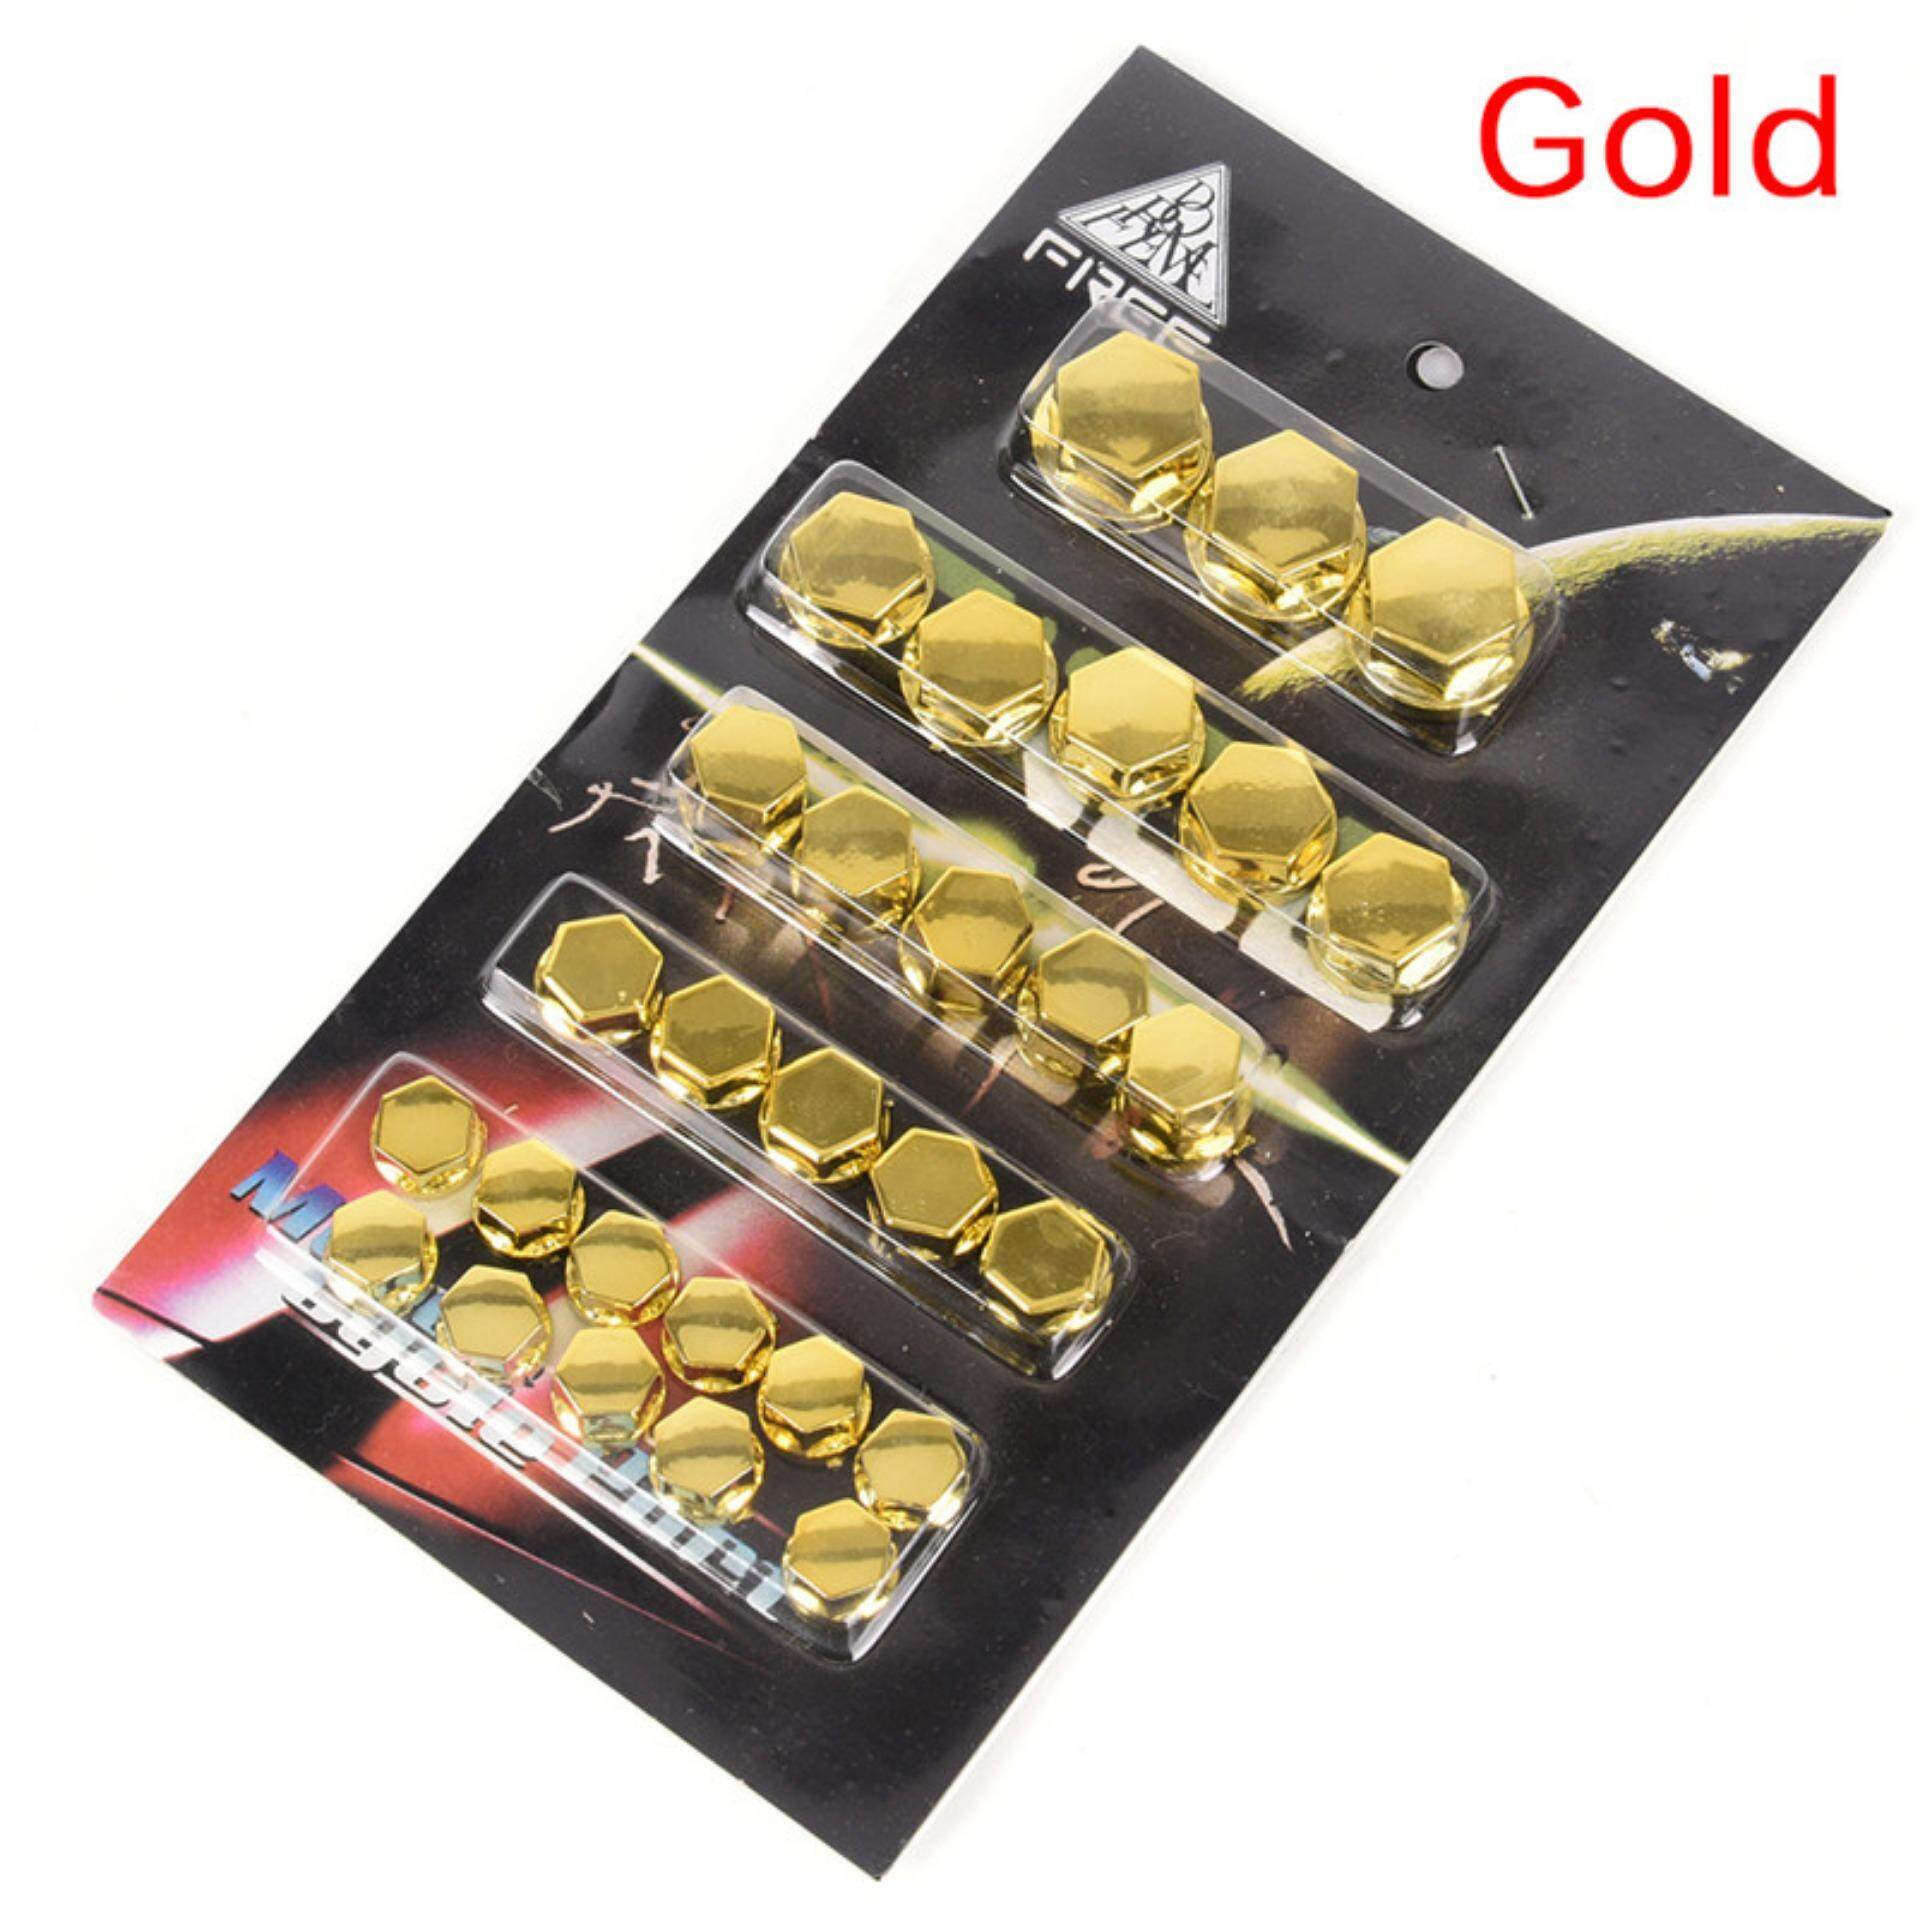 Vegoo 30pcs Motorcycle Screw Nut Bolt Cap Cover Decoration Centro Motorbike Ornament Fashion Gold By Vegoo.